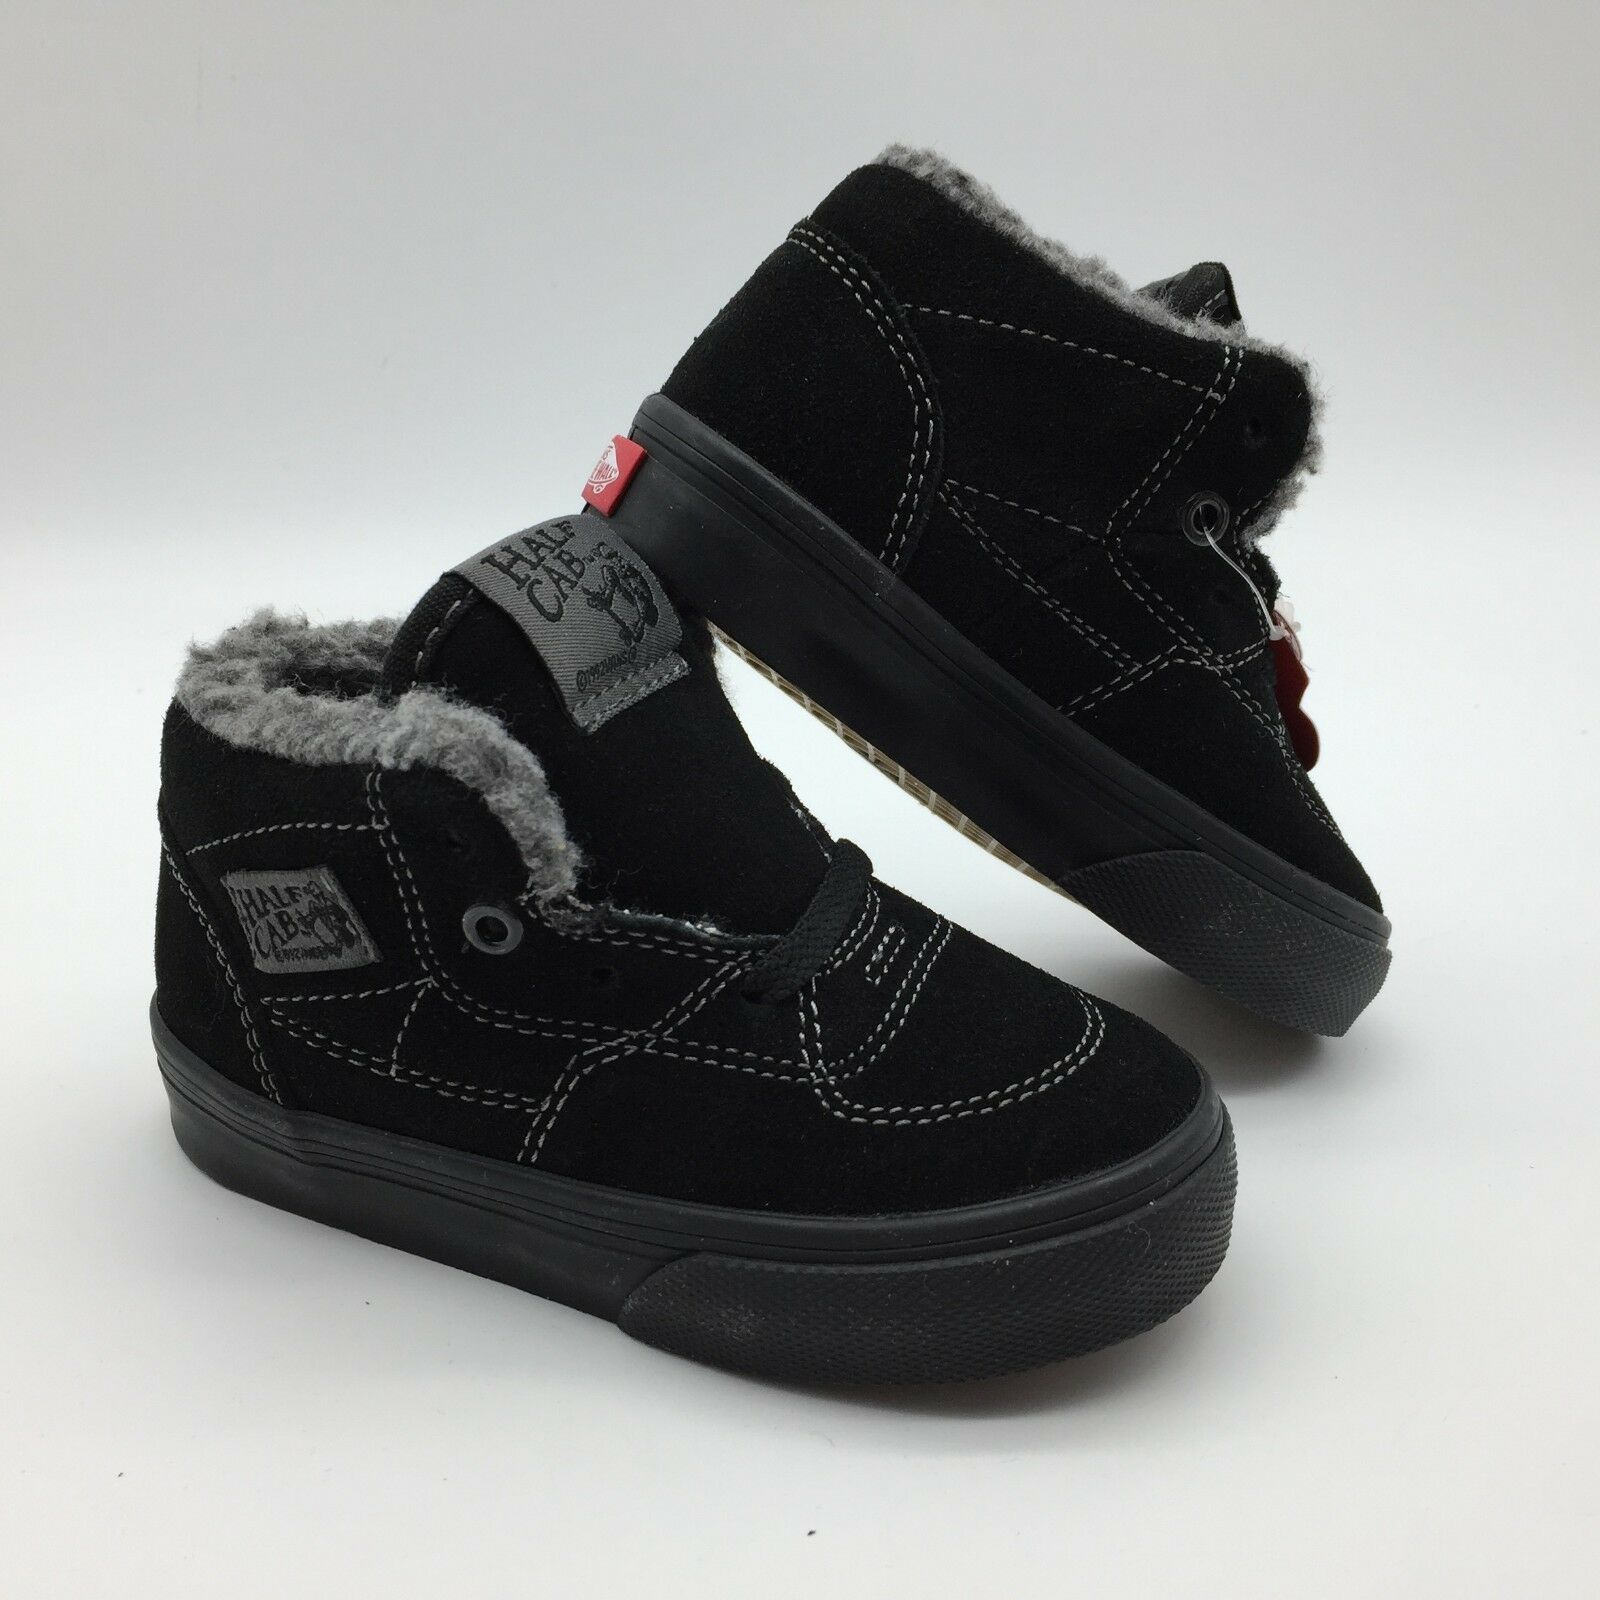 Vans Toddlers shoes Half Cab  Sherpa  Black Black